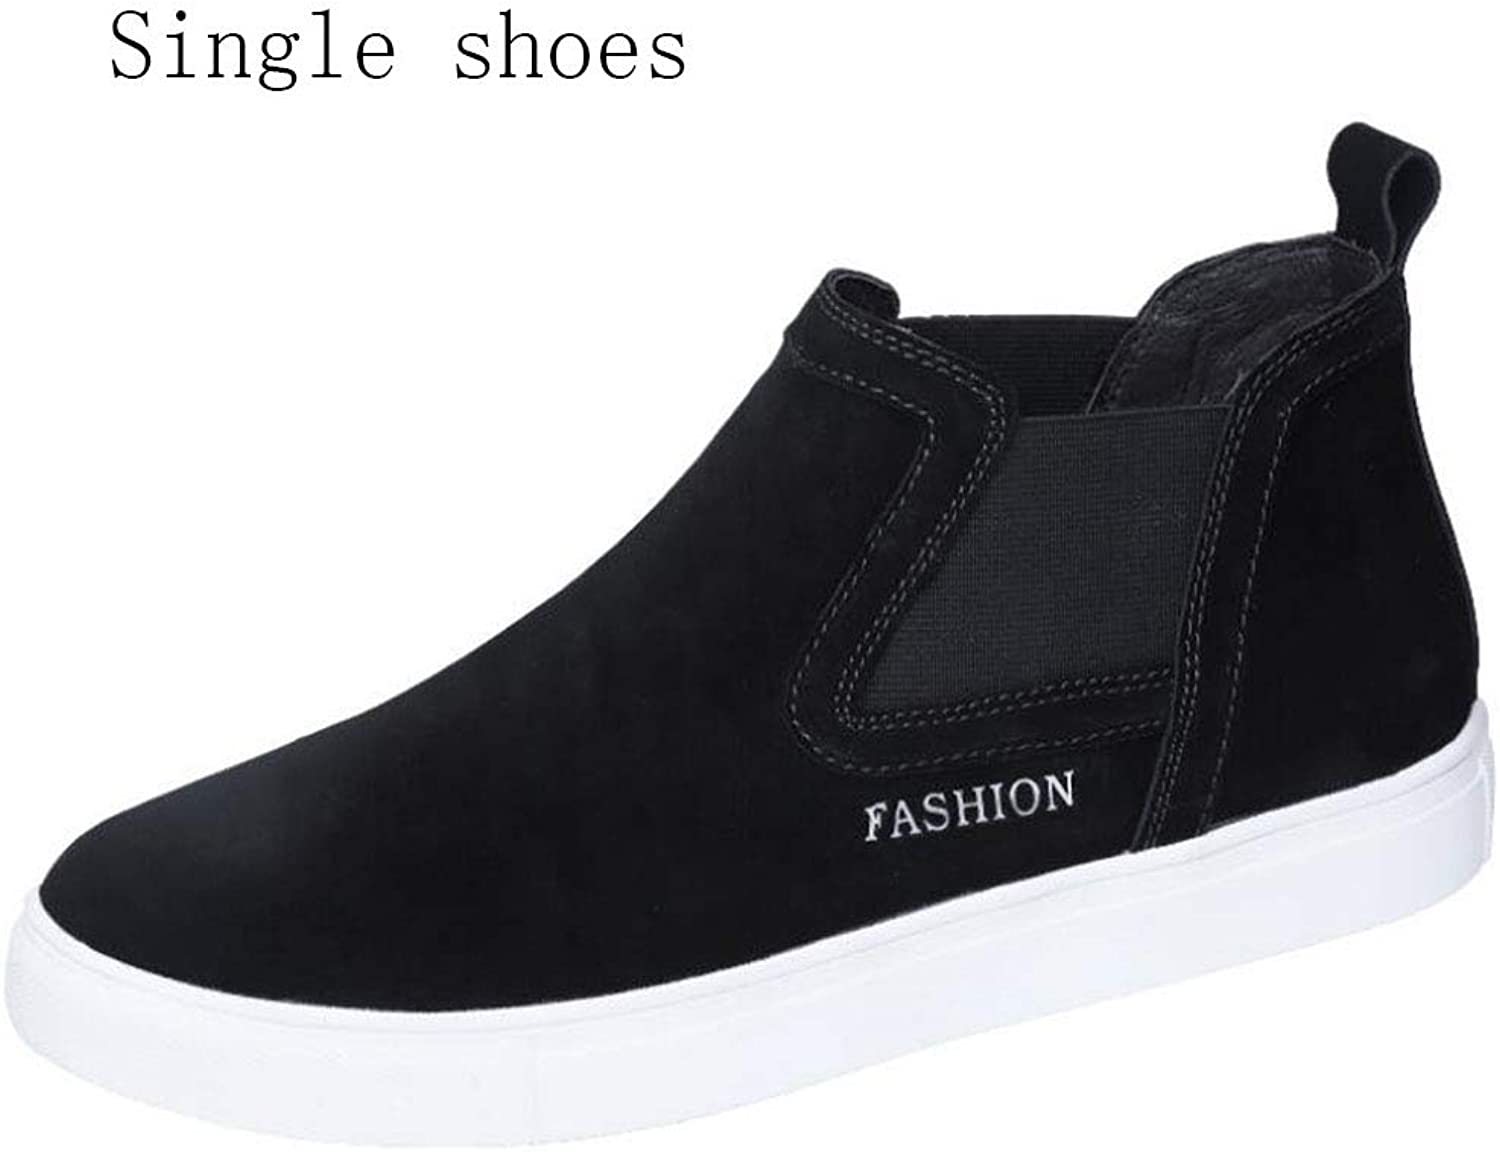 Men's Platform shoes Spring Fall Comfort Sneakers Walking shoes,Running shoes,Flat Loafers,Comfort High-Top Sneakers,Casual Travel,Rounded Toe,B,39